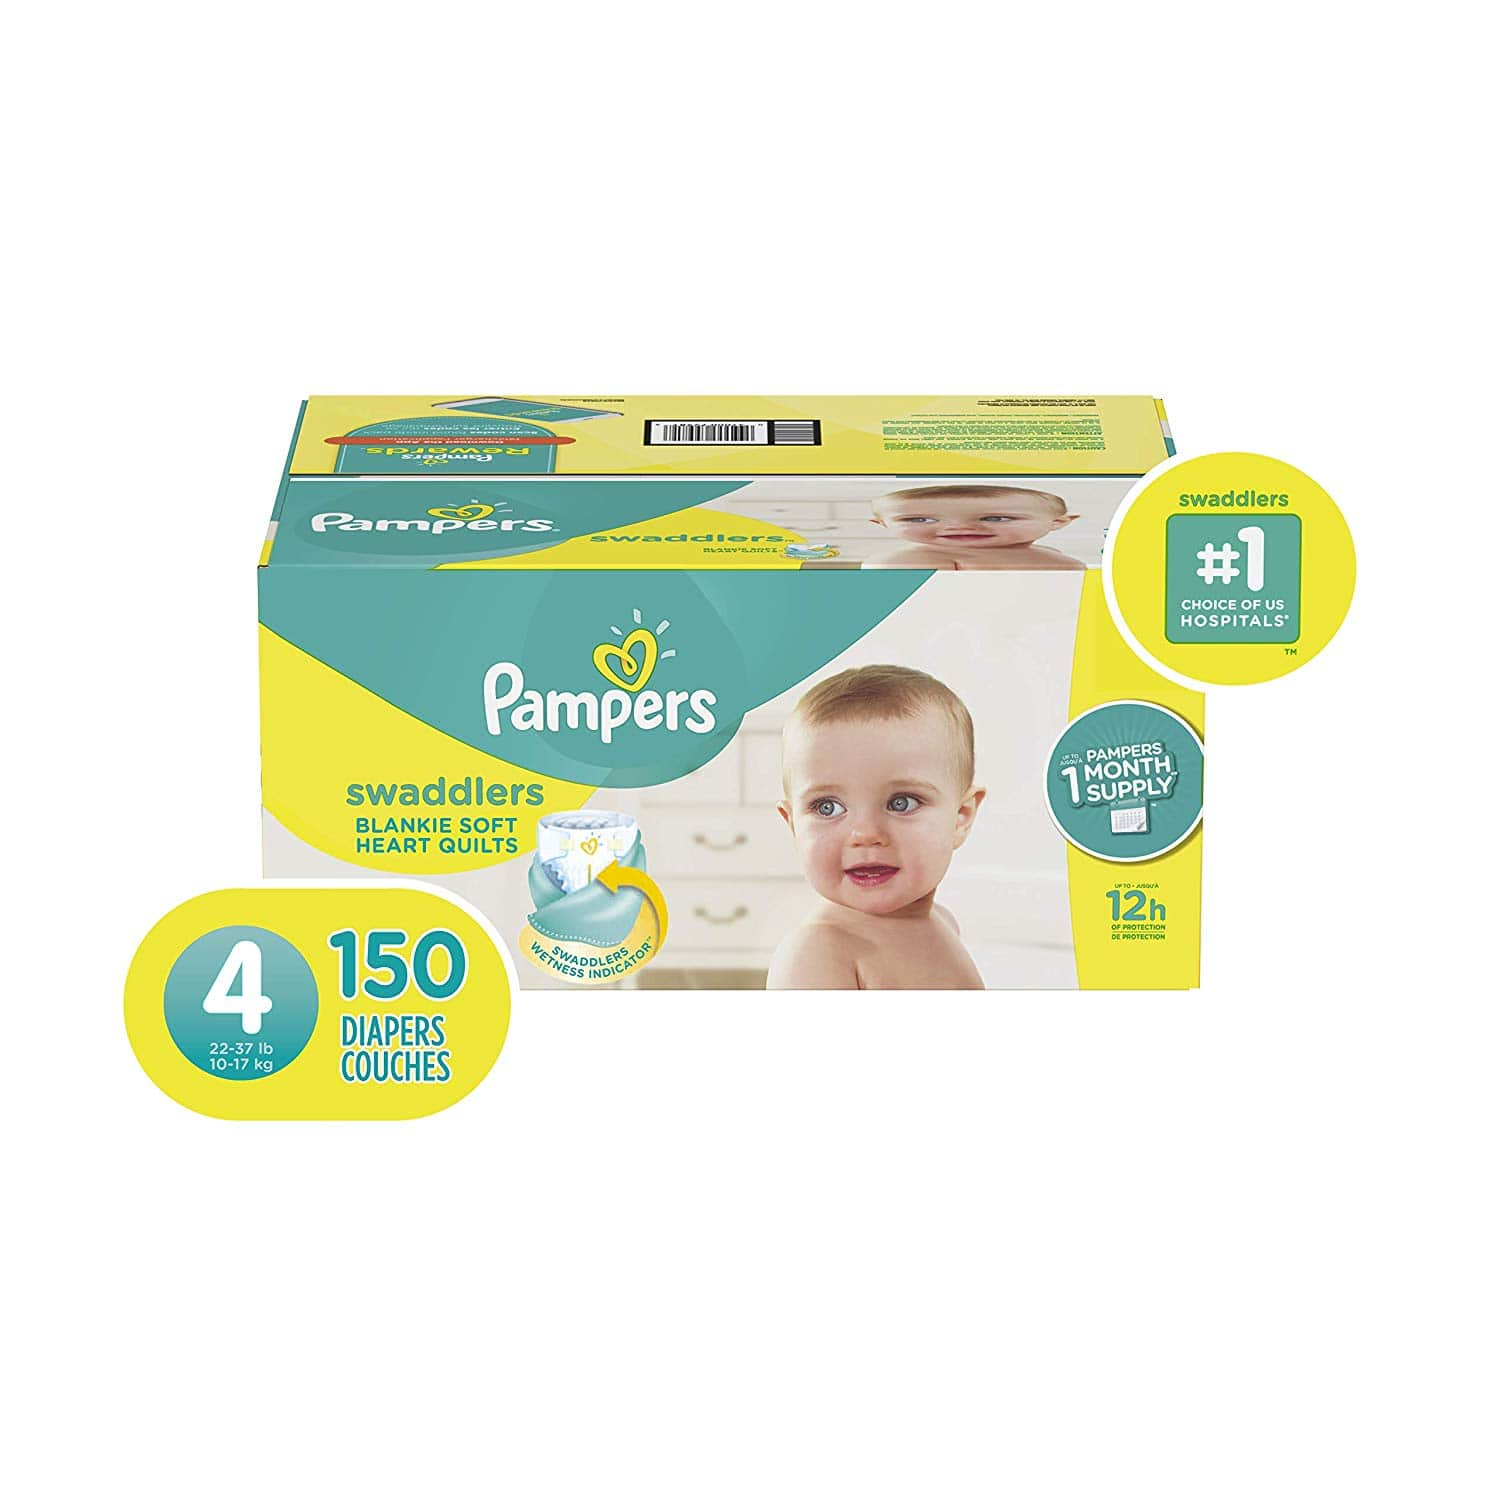 Pampers Swaddlers Diapers Size 4 150 Count 50 percent off first order $24.75